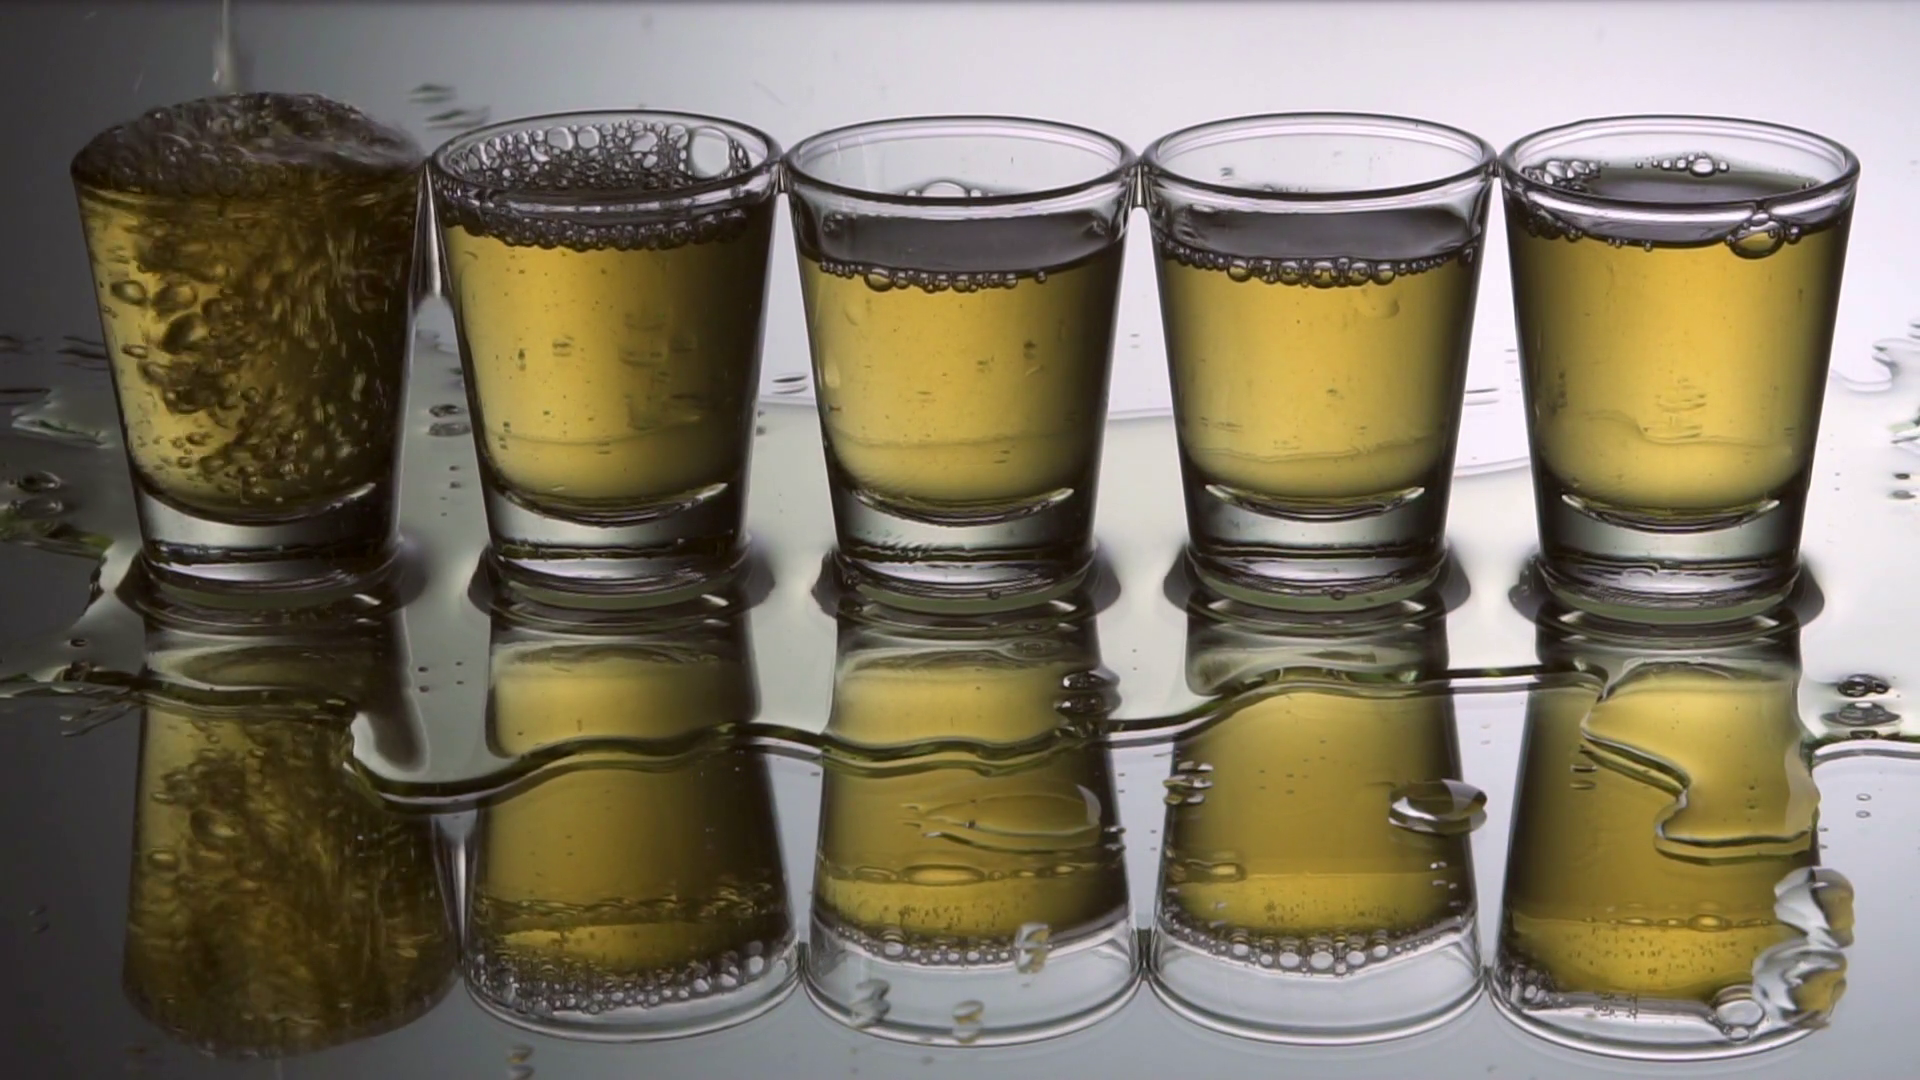 pouring-tequila-shots-slow-motion_s1rlzlbde_thumbnail-full15.png